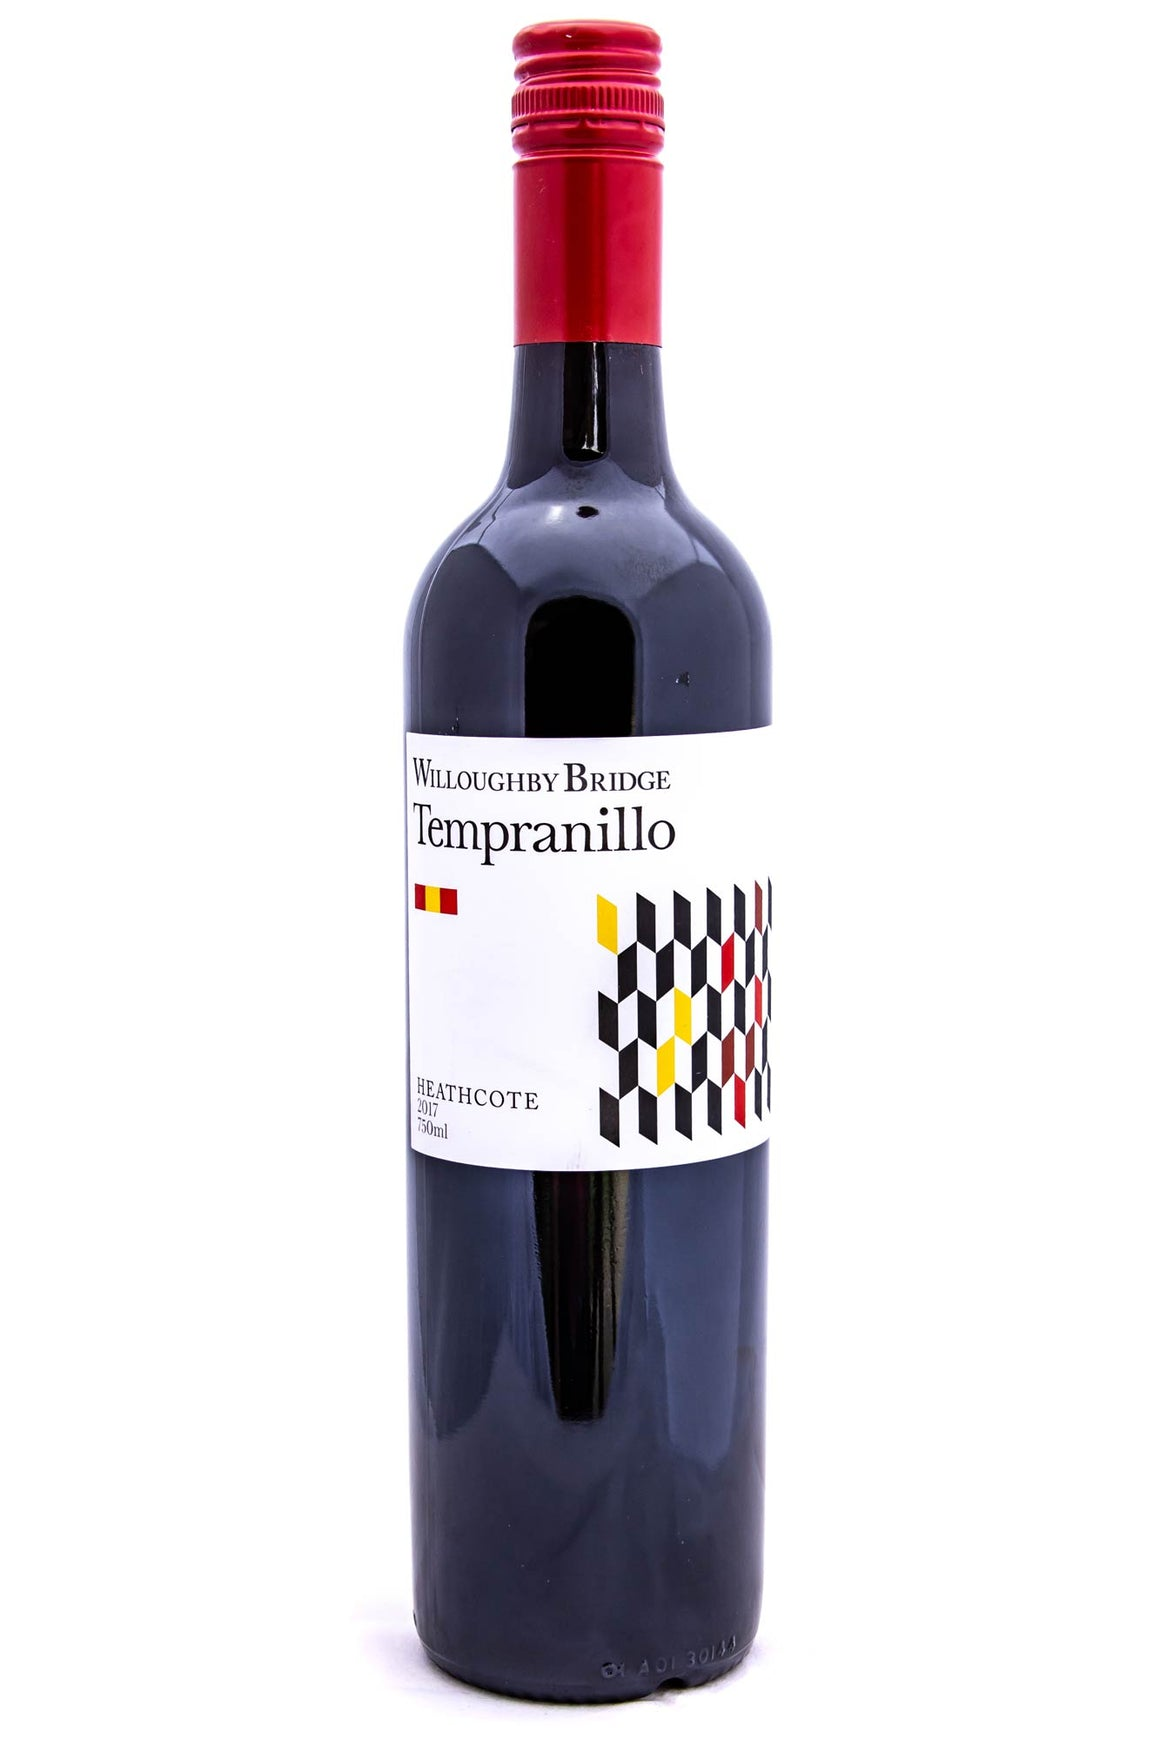 Willoughby Bridge Tempranillo 2018